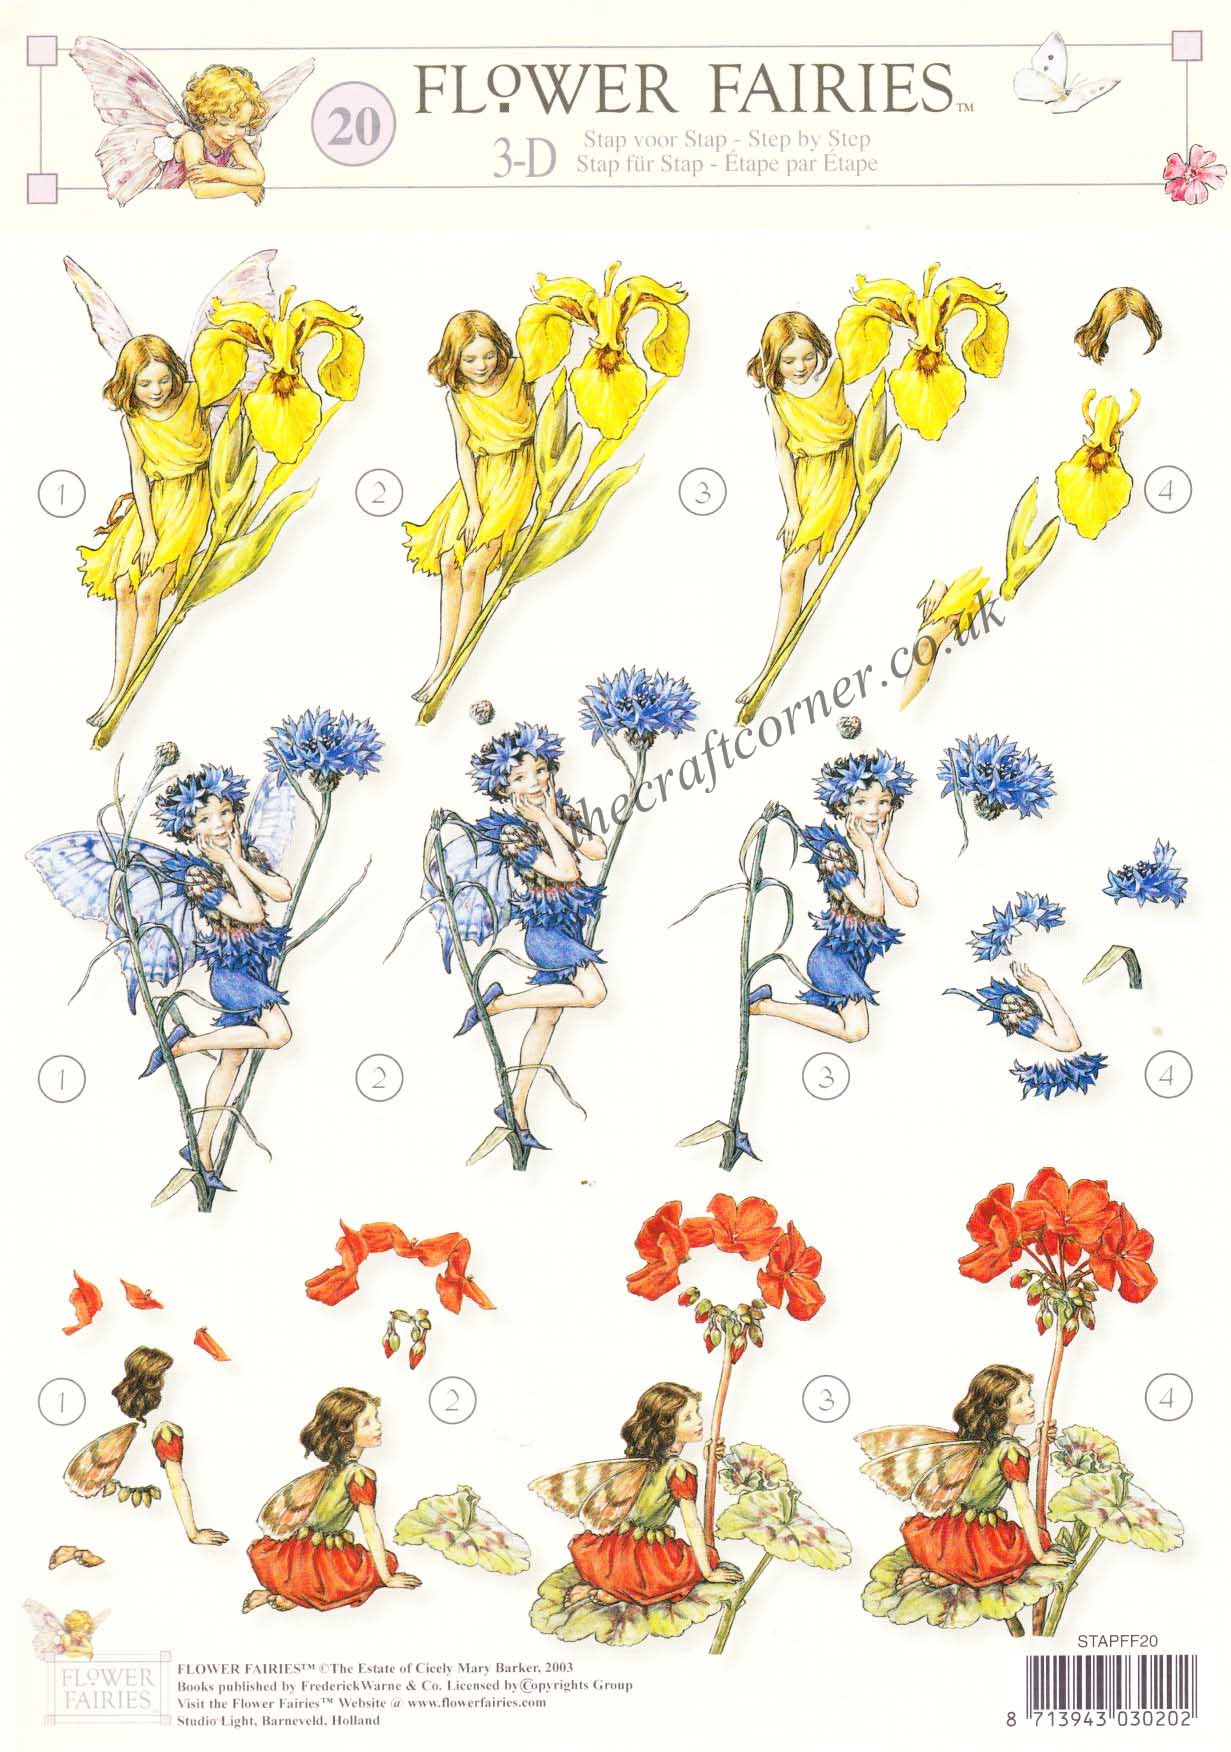 Flower Fairy 20 Geranium Iris and Cornflower Fairies by Cicely.